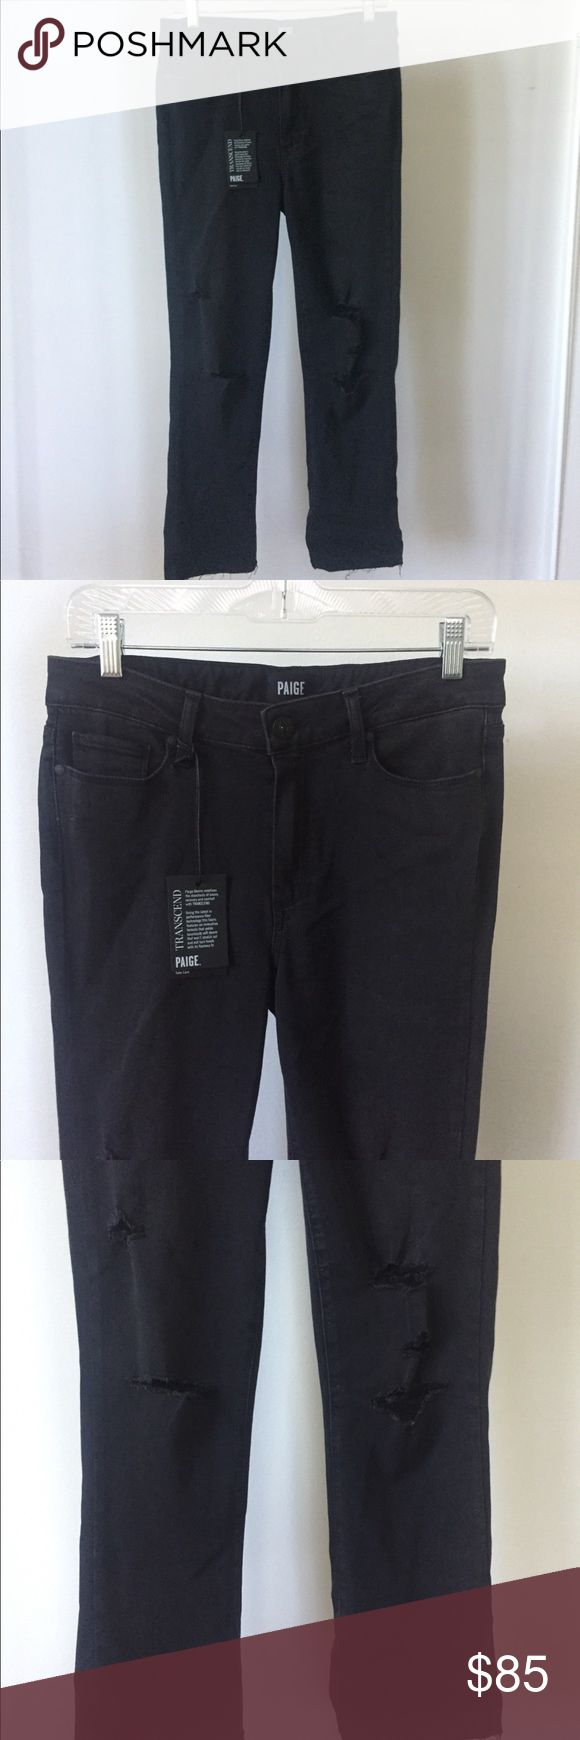 NWT PAIGE Jacqueline Straight Jeans Raw Hem NWT! Such a soft material. Carbon destructed raw hem. Retail $215, on sale for $150 online currently. PAIGE Jeans Straight Leg